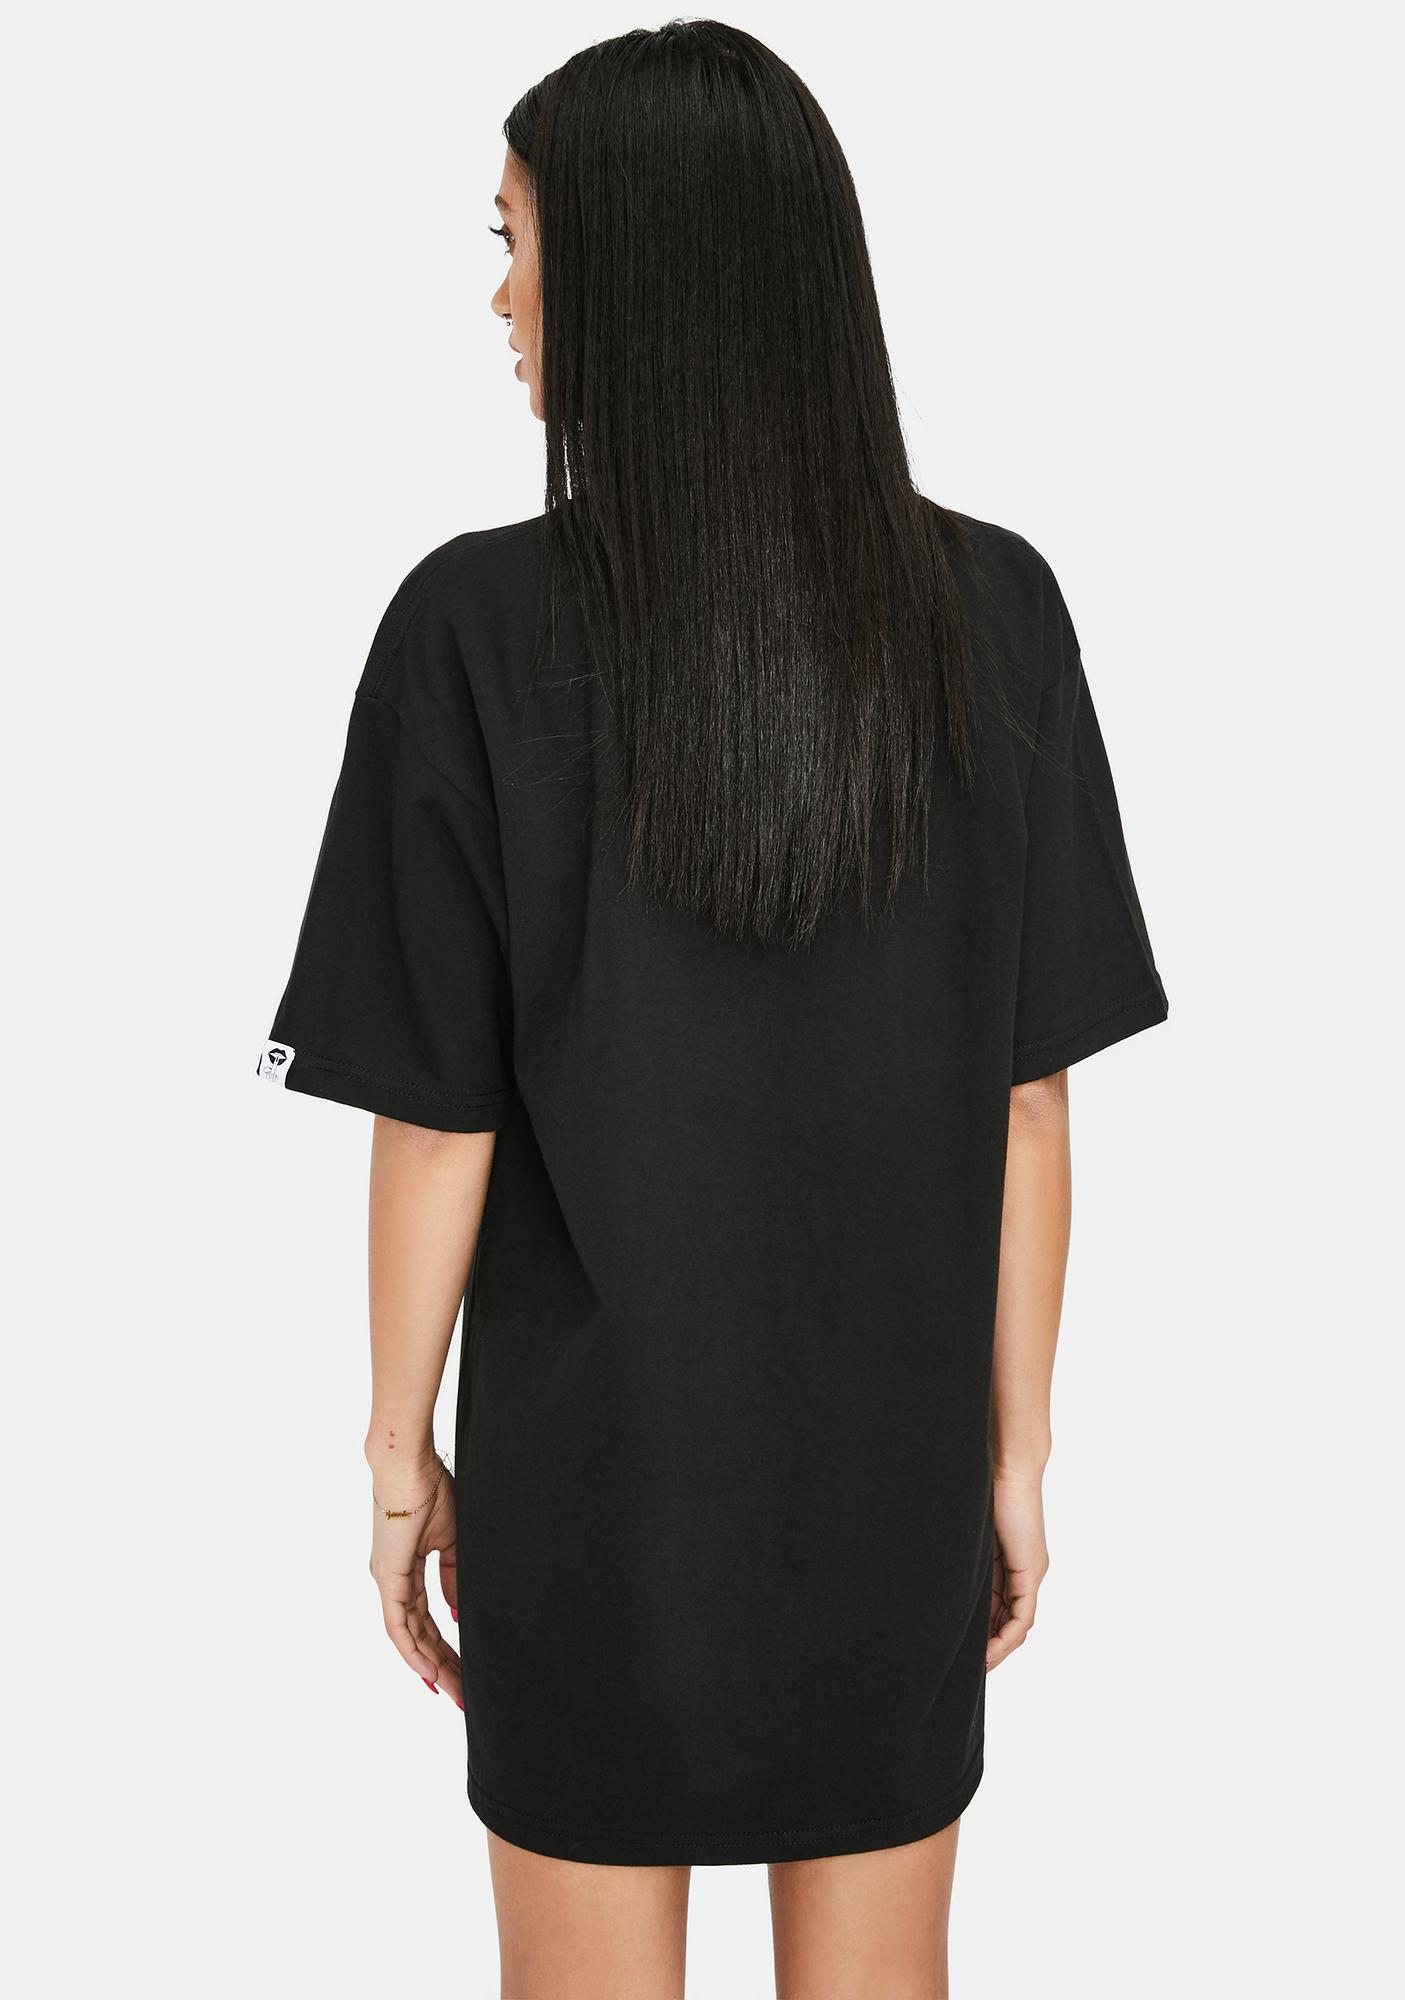 FEMMEMUTE Envy Graphic Tee